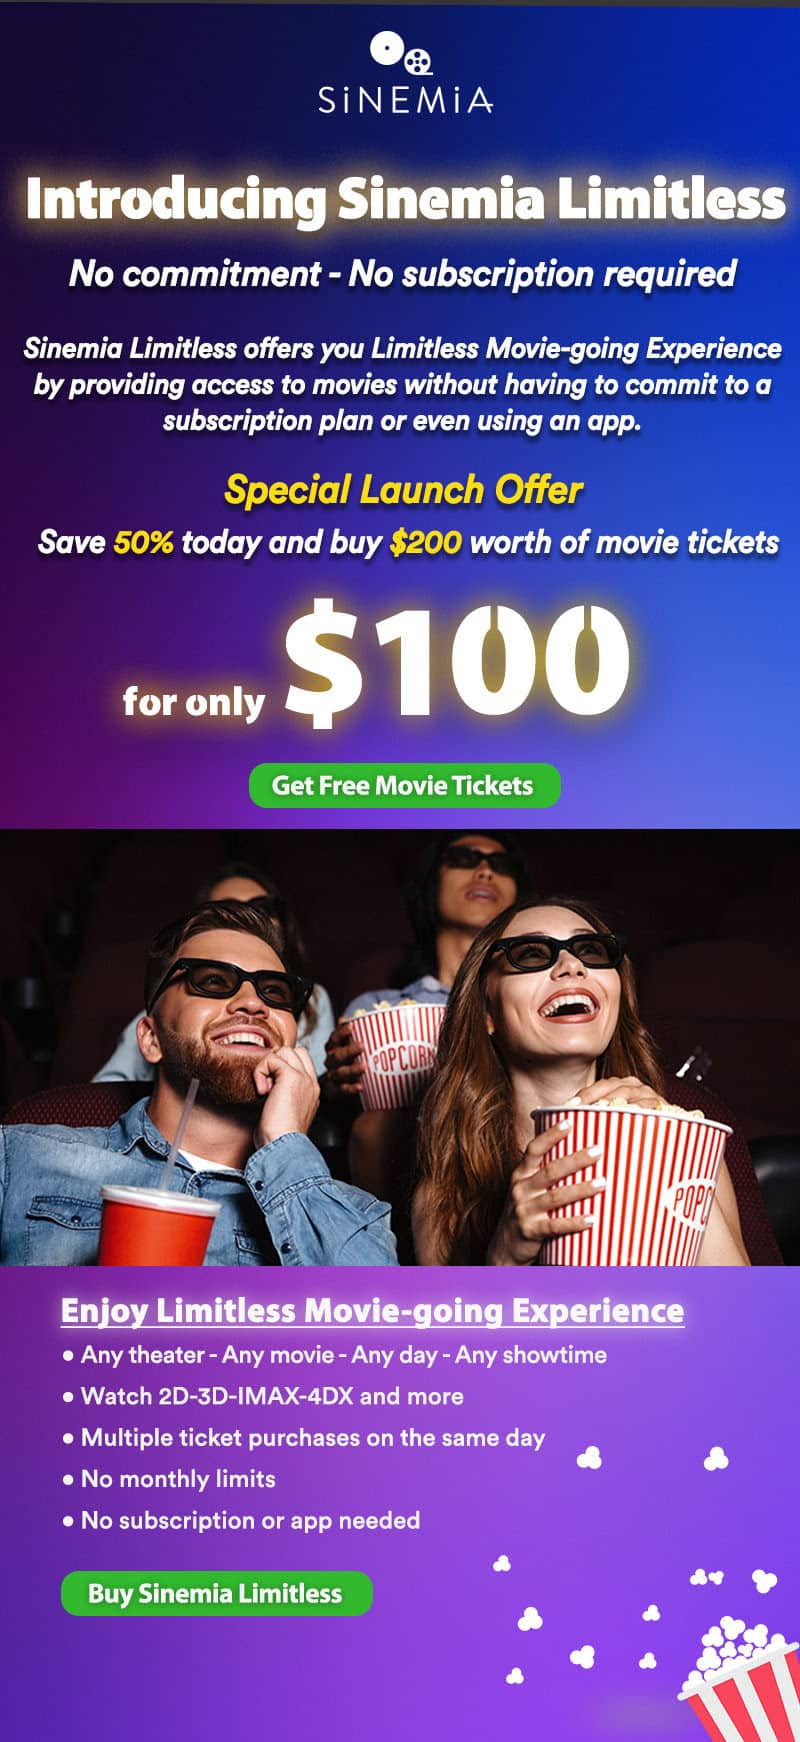 Sinemia - save 50% today! No commitment, no subscription required